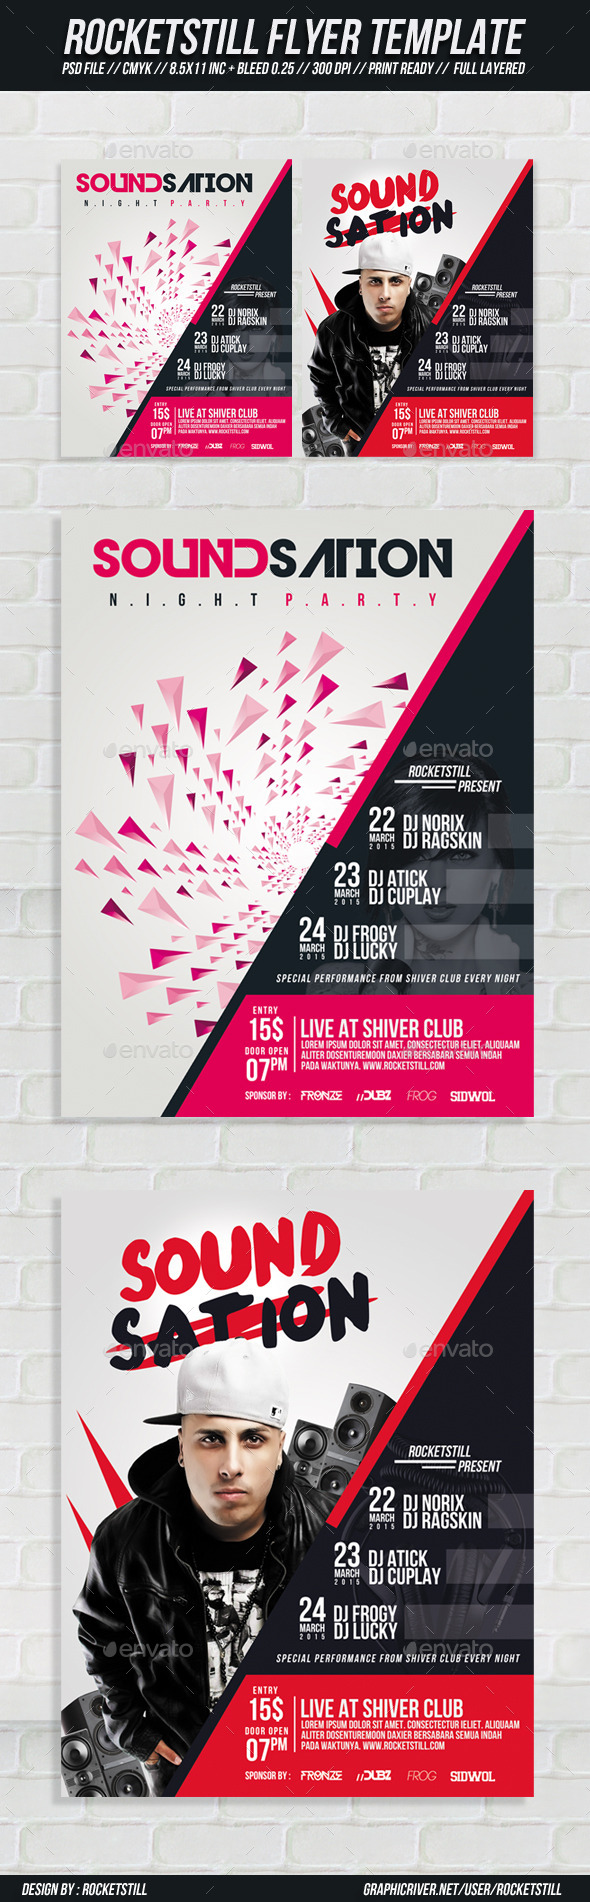 GraphicRiver Sound Sation Flyer 8985632